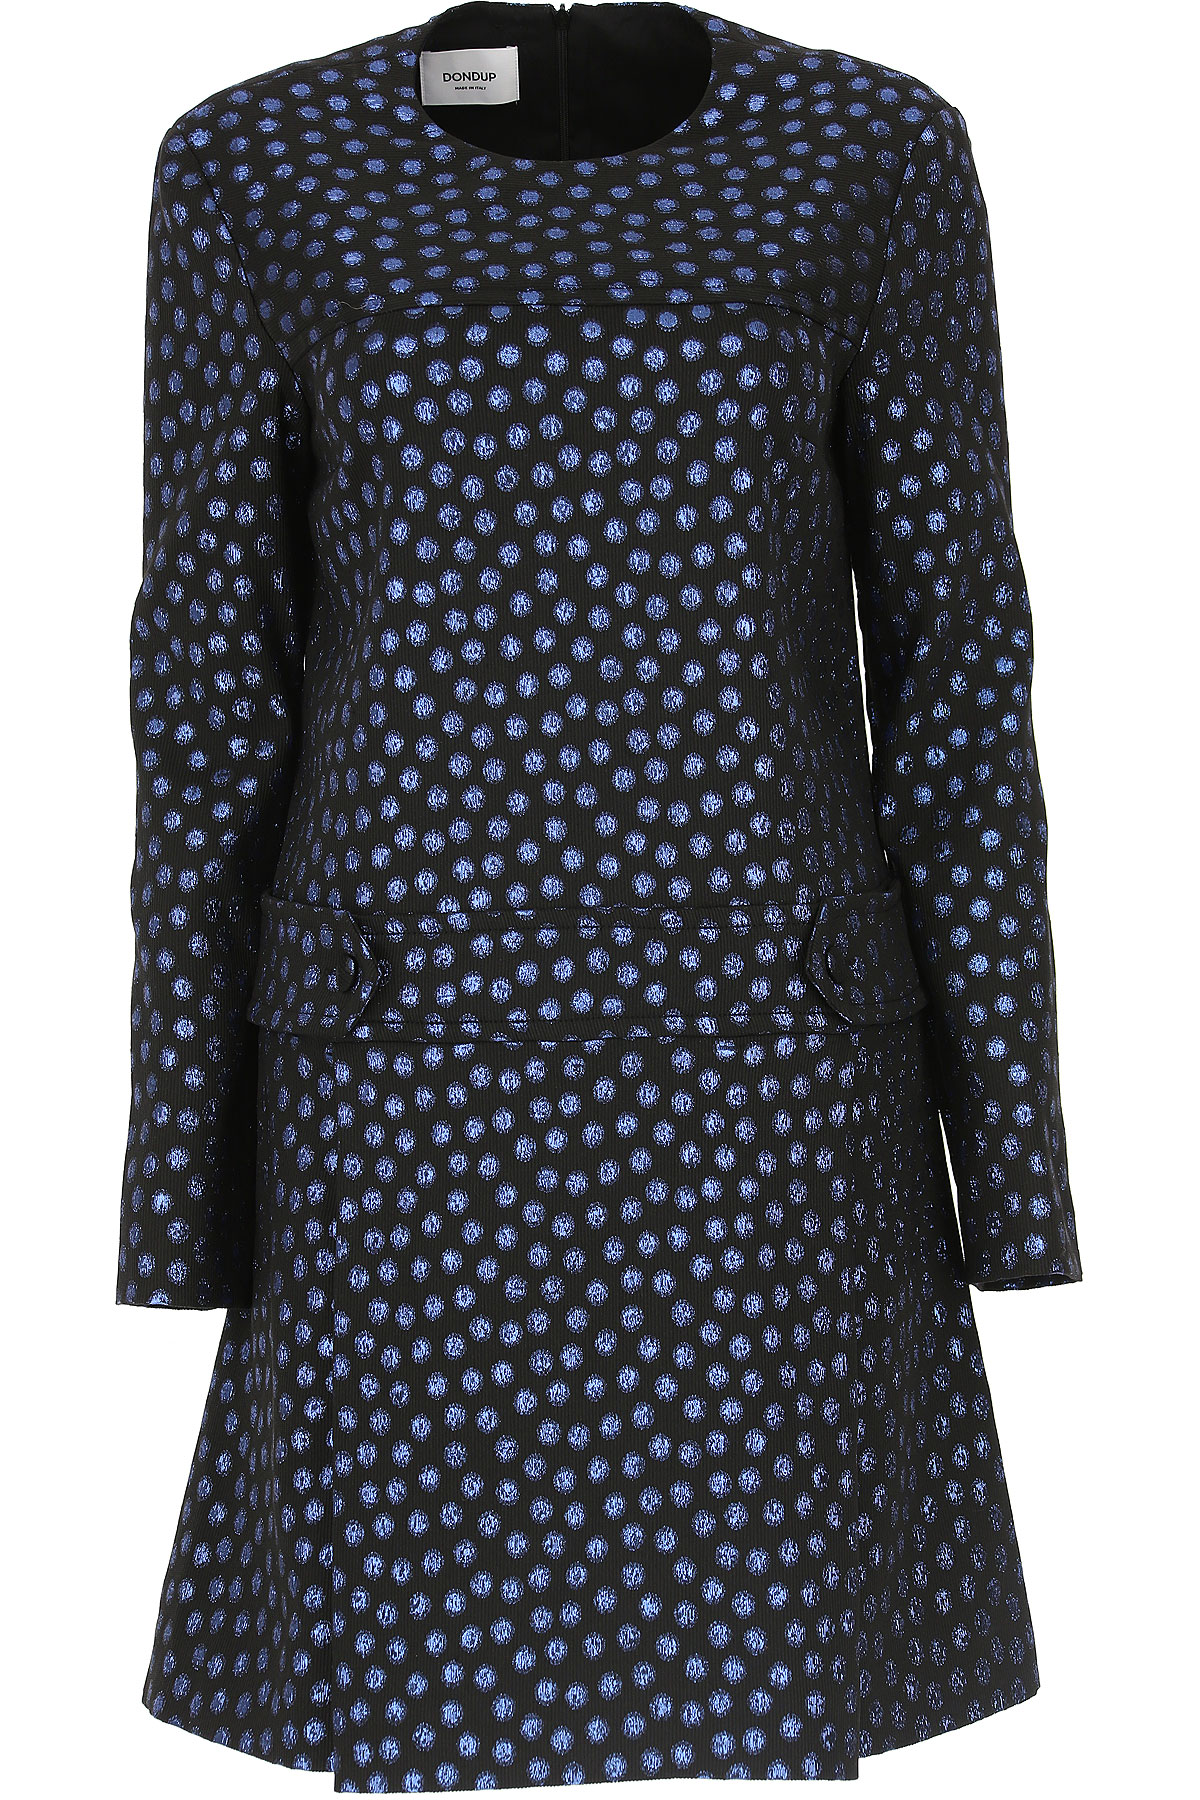 Image of Dondup Dress for Women, Evening Cocktail Party, Black, Viscose, 2017, 4 6 8